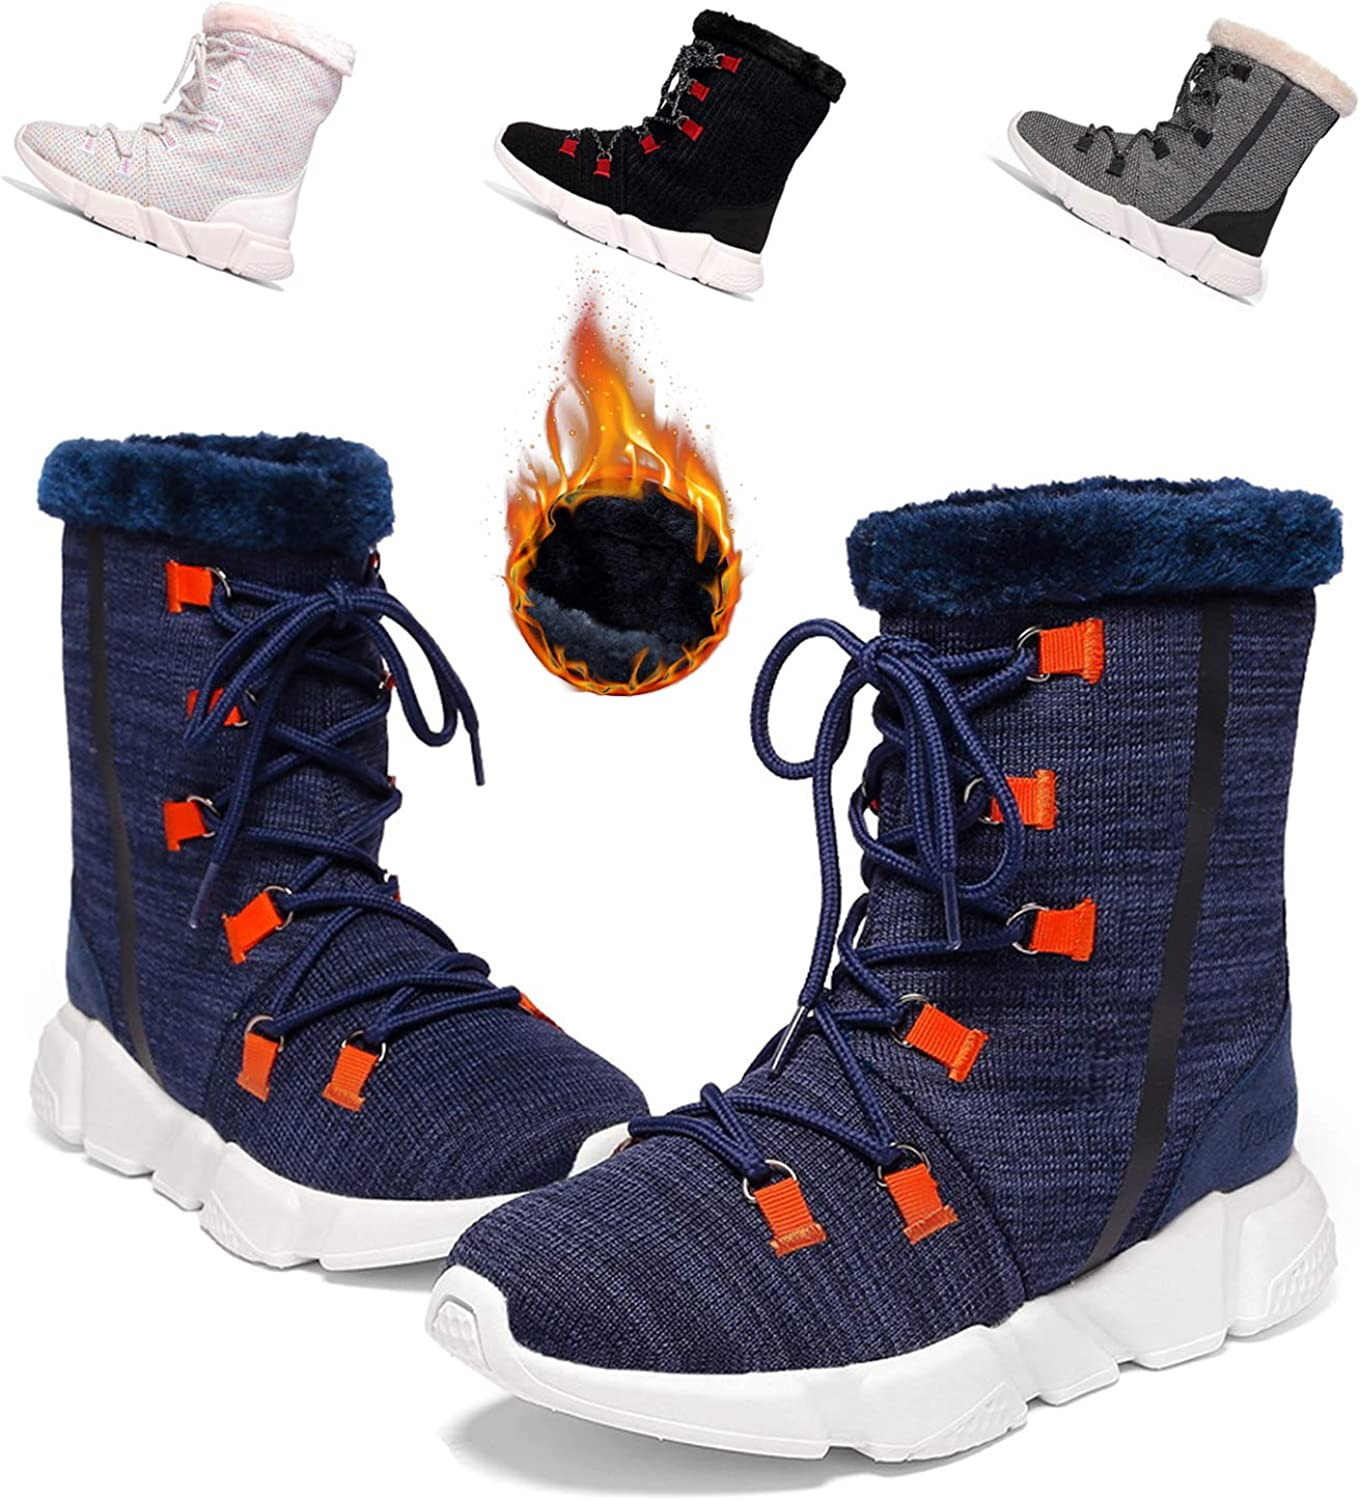 KUULAND Boy's Girl's Snow Boots Women's Waterproof Winter Boots Lightweight Warm Fur Lined shoes